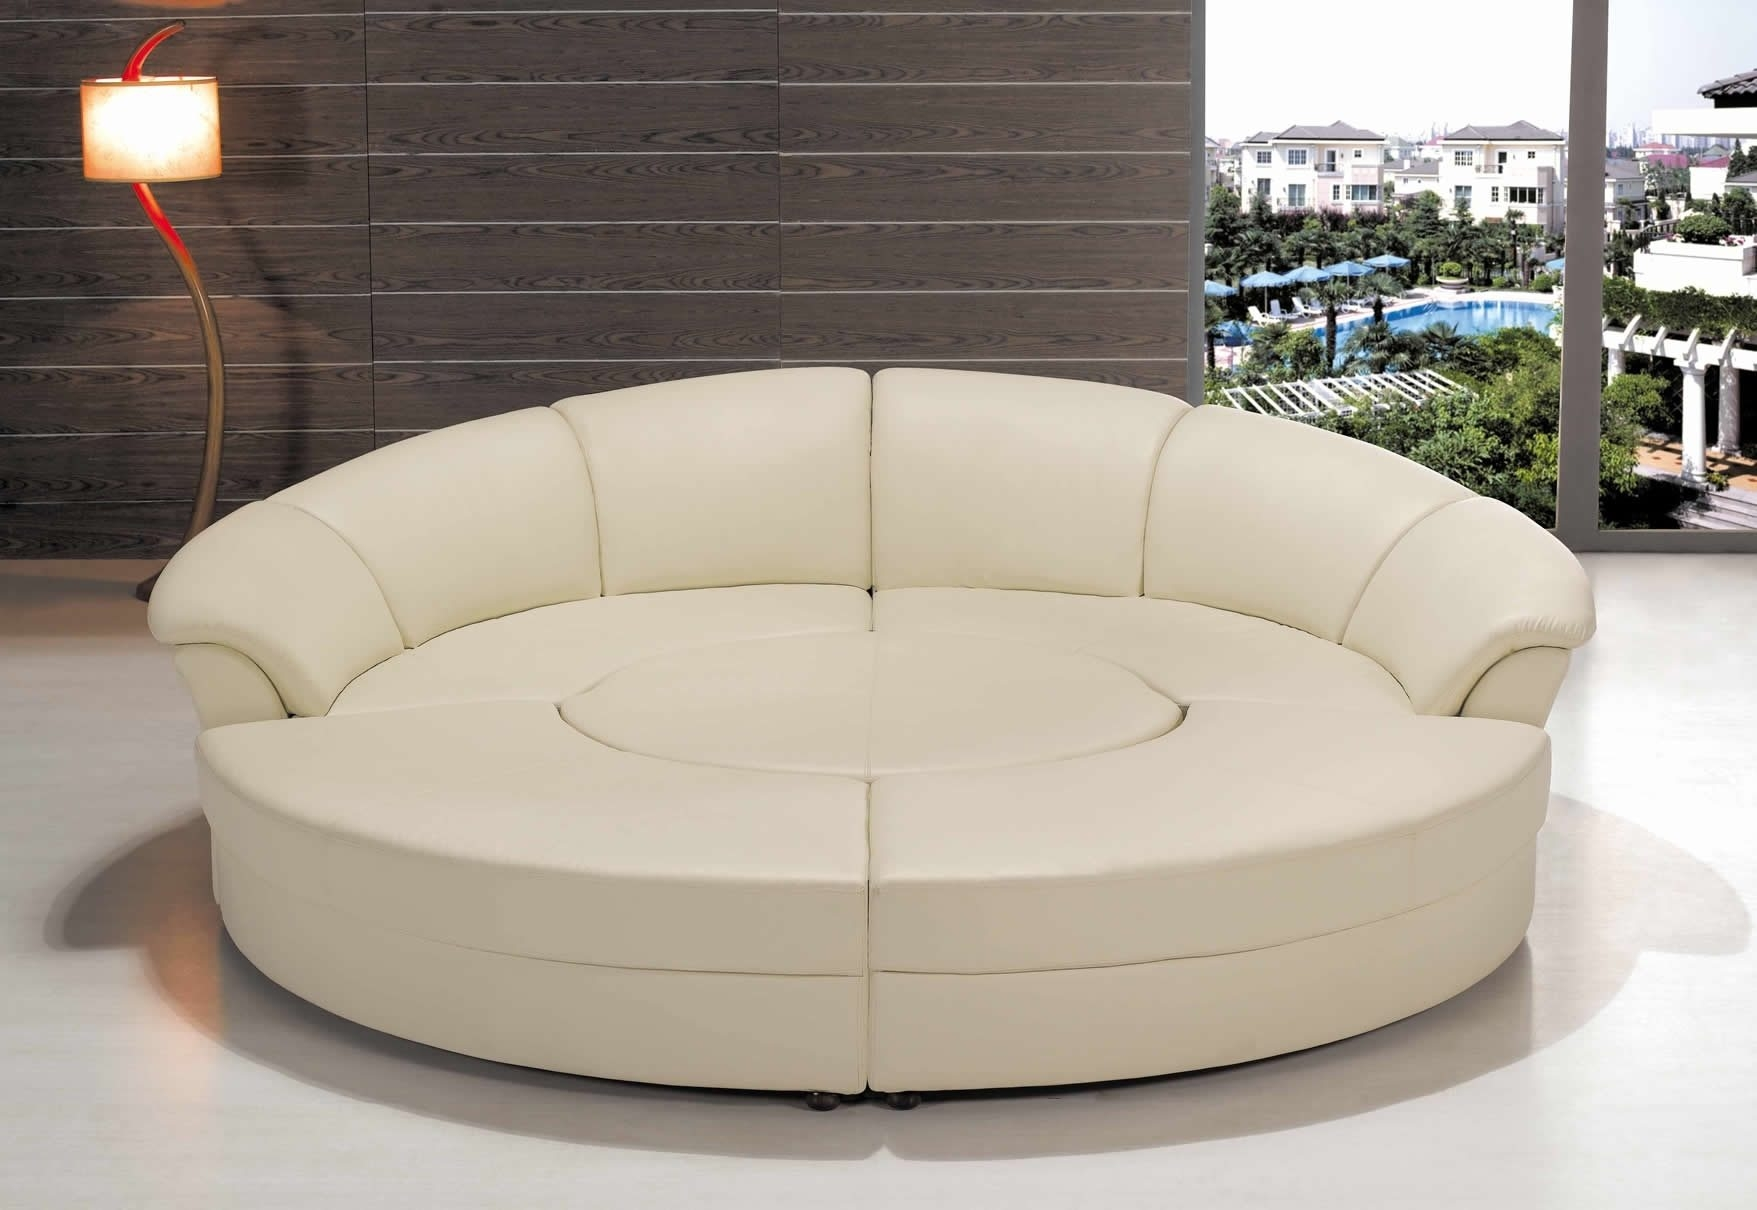 12 ideas of circular sectional sofa for Semi classic sofa